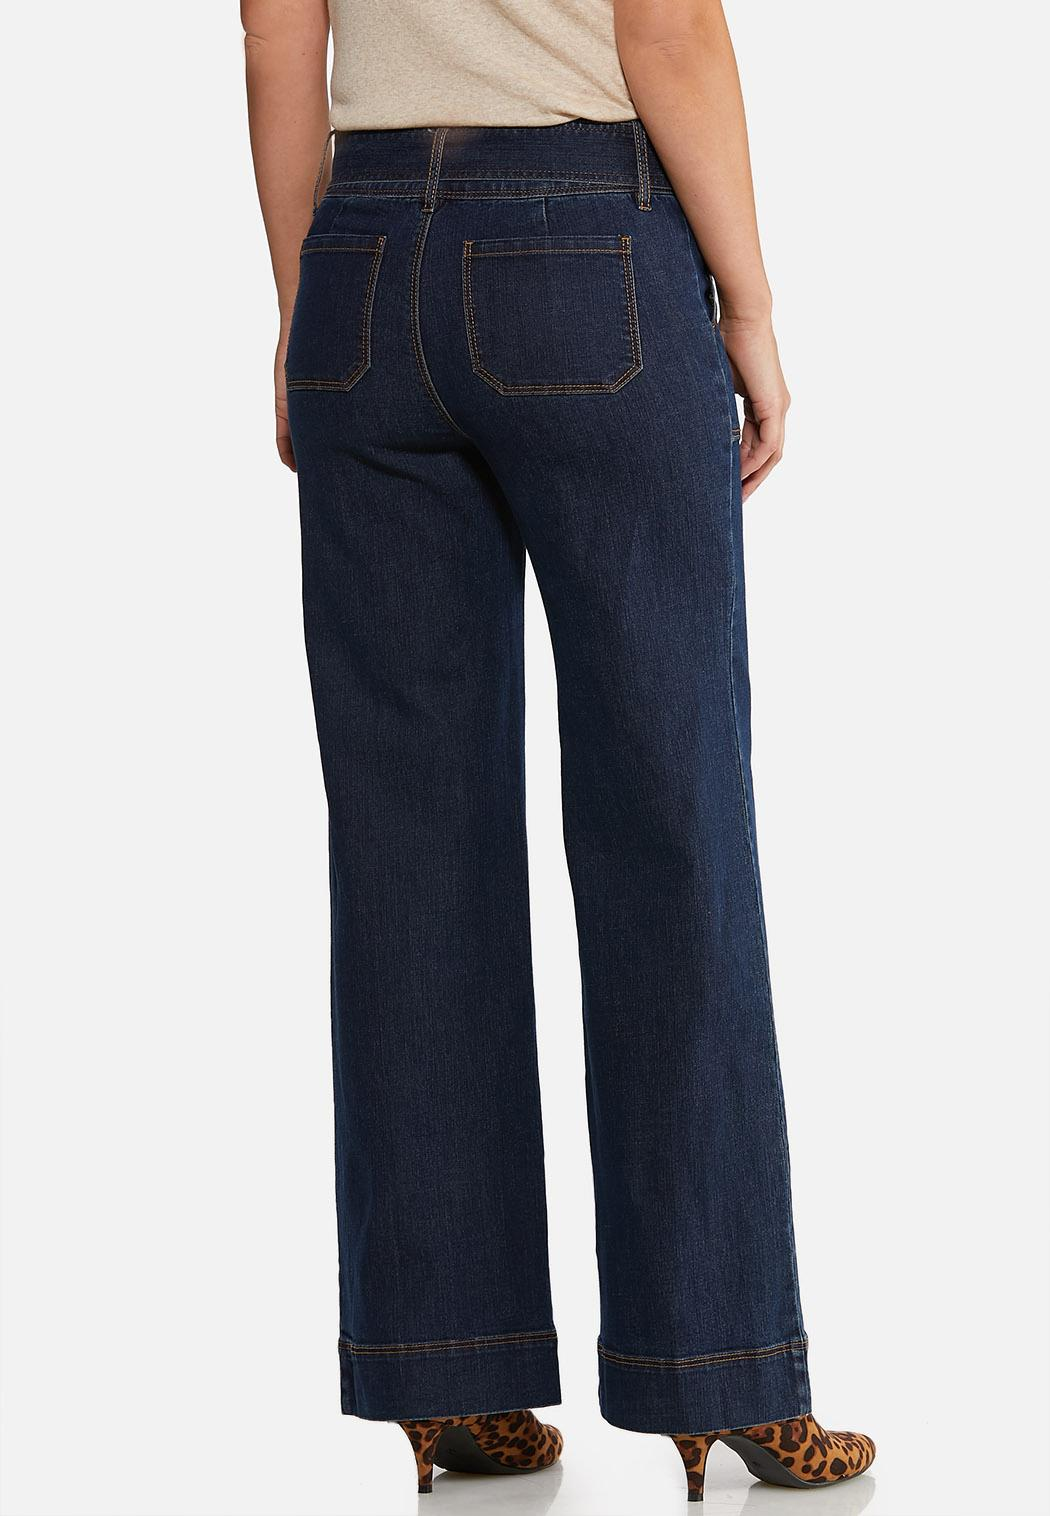 Petite Wide Leg Belted Jeans (Item #44050519)